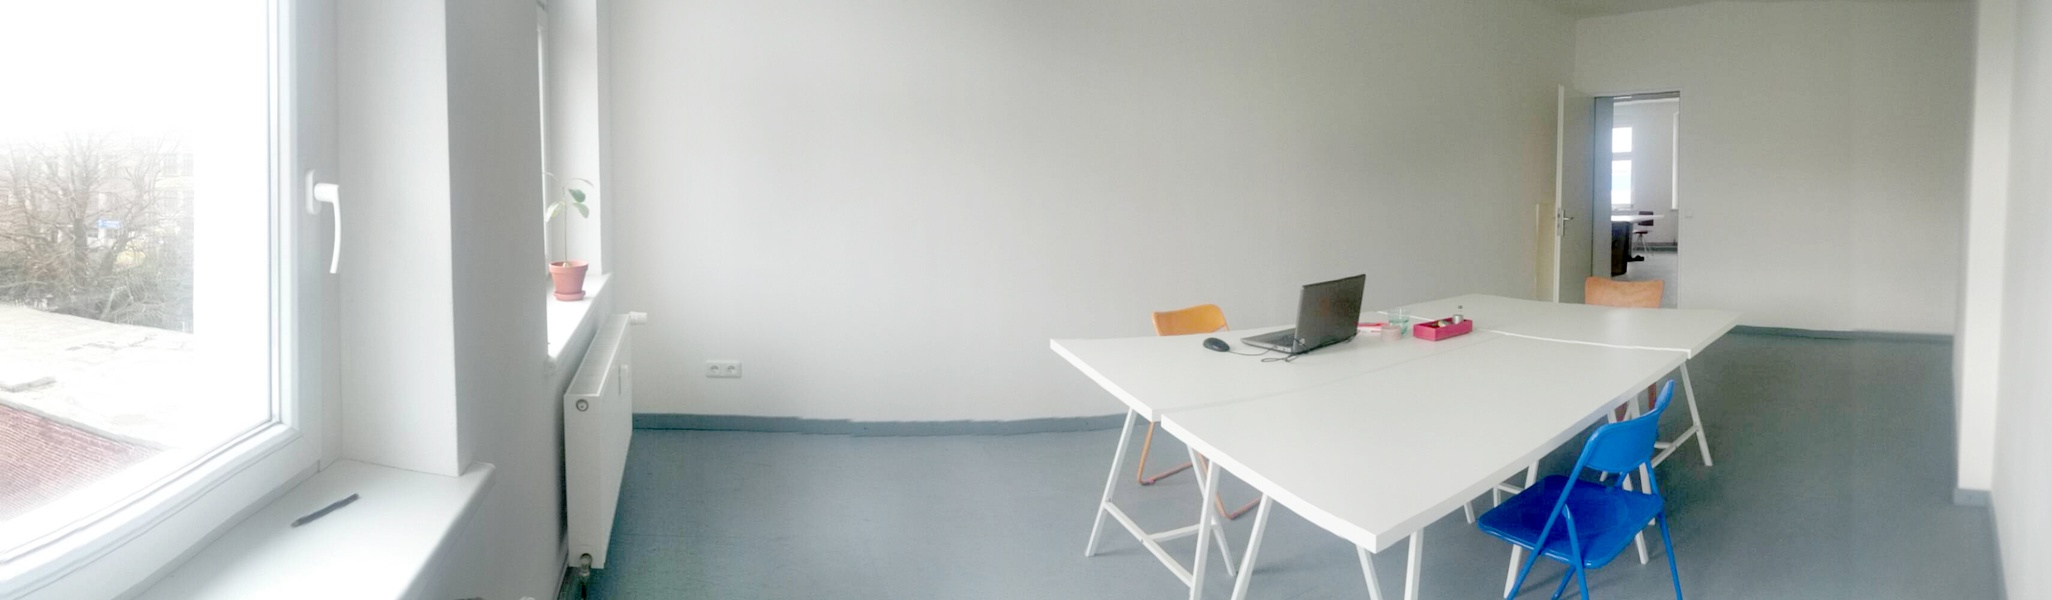 1 desk to let in spacious coworking space